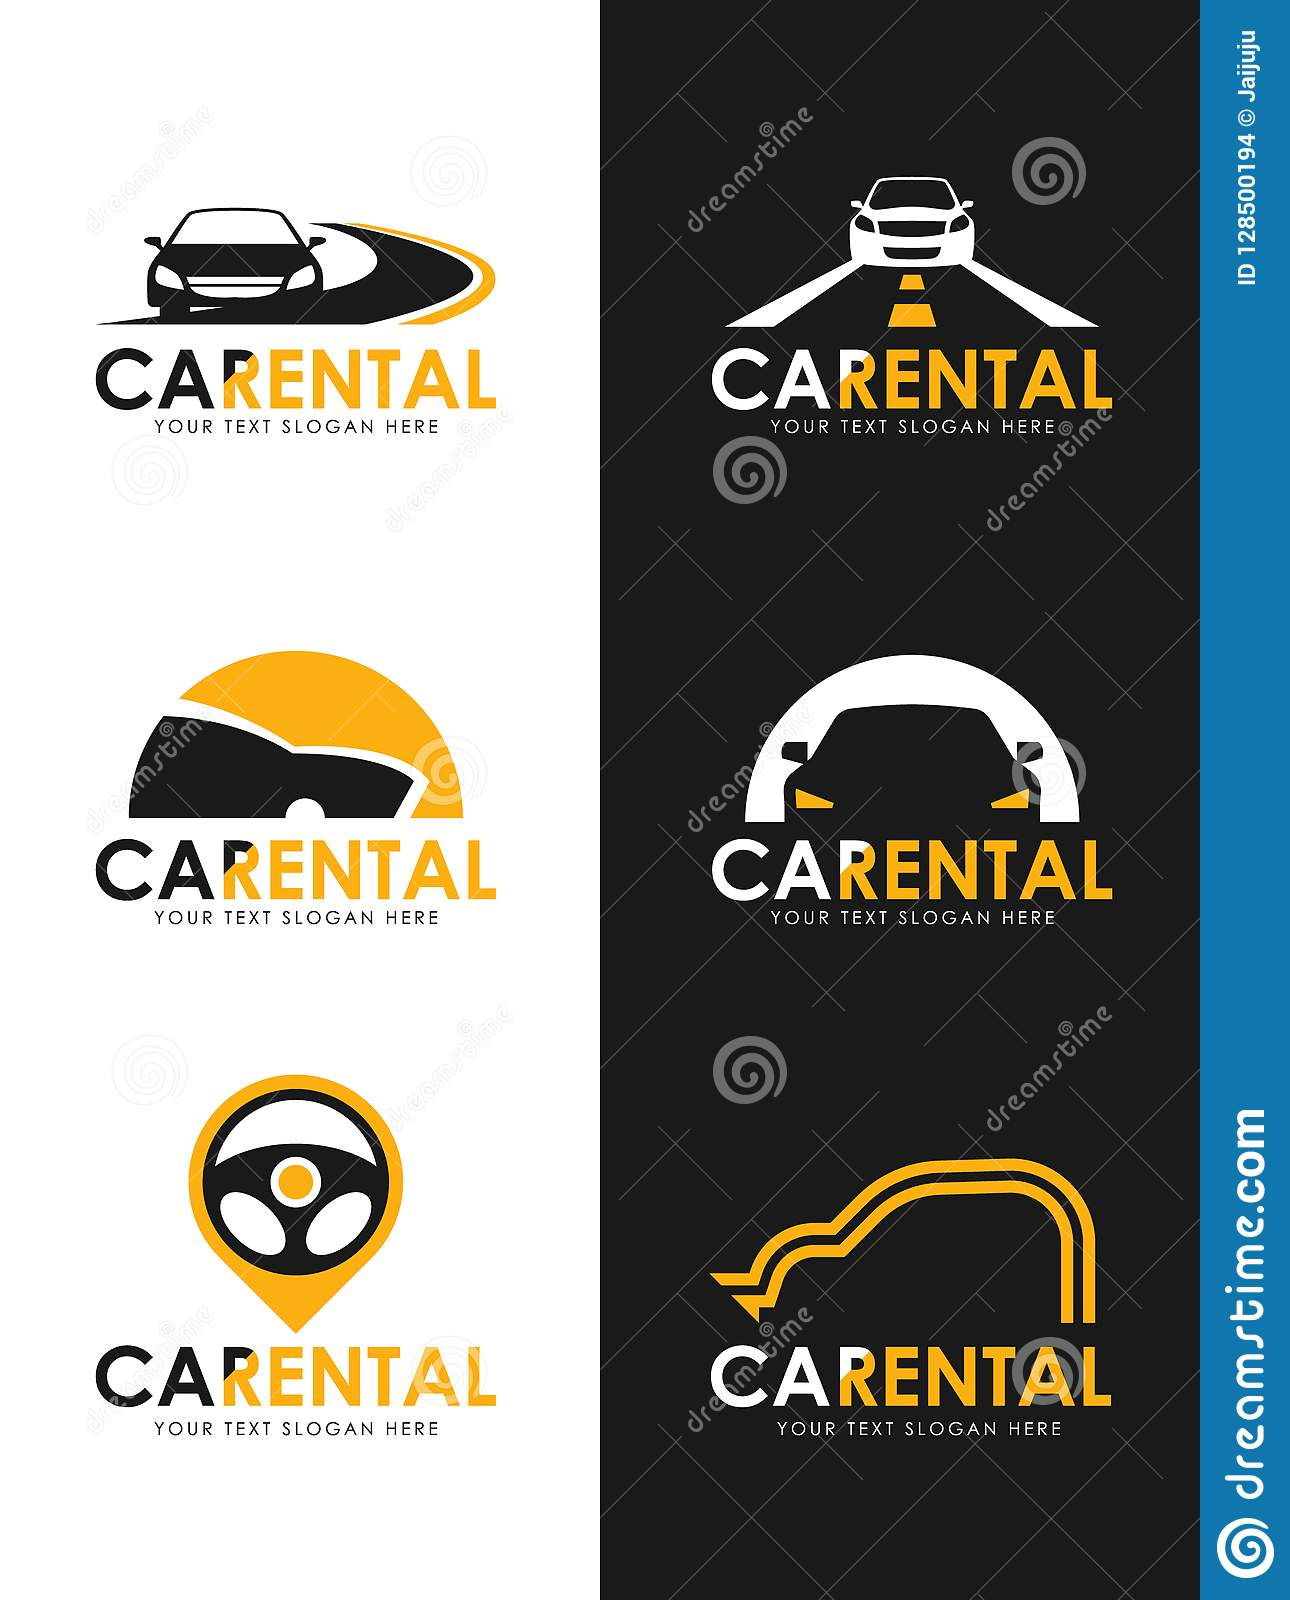 Car Rental Logo Sign Whit Black And Yellow Car Road And Steering Wheel Sign Vector Set Design Stock Vector Illustration Of Repair Doctor 128500194